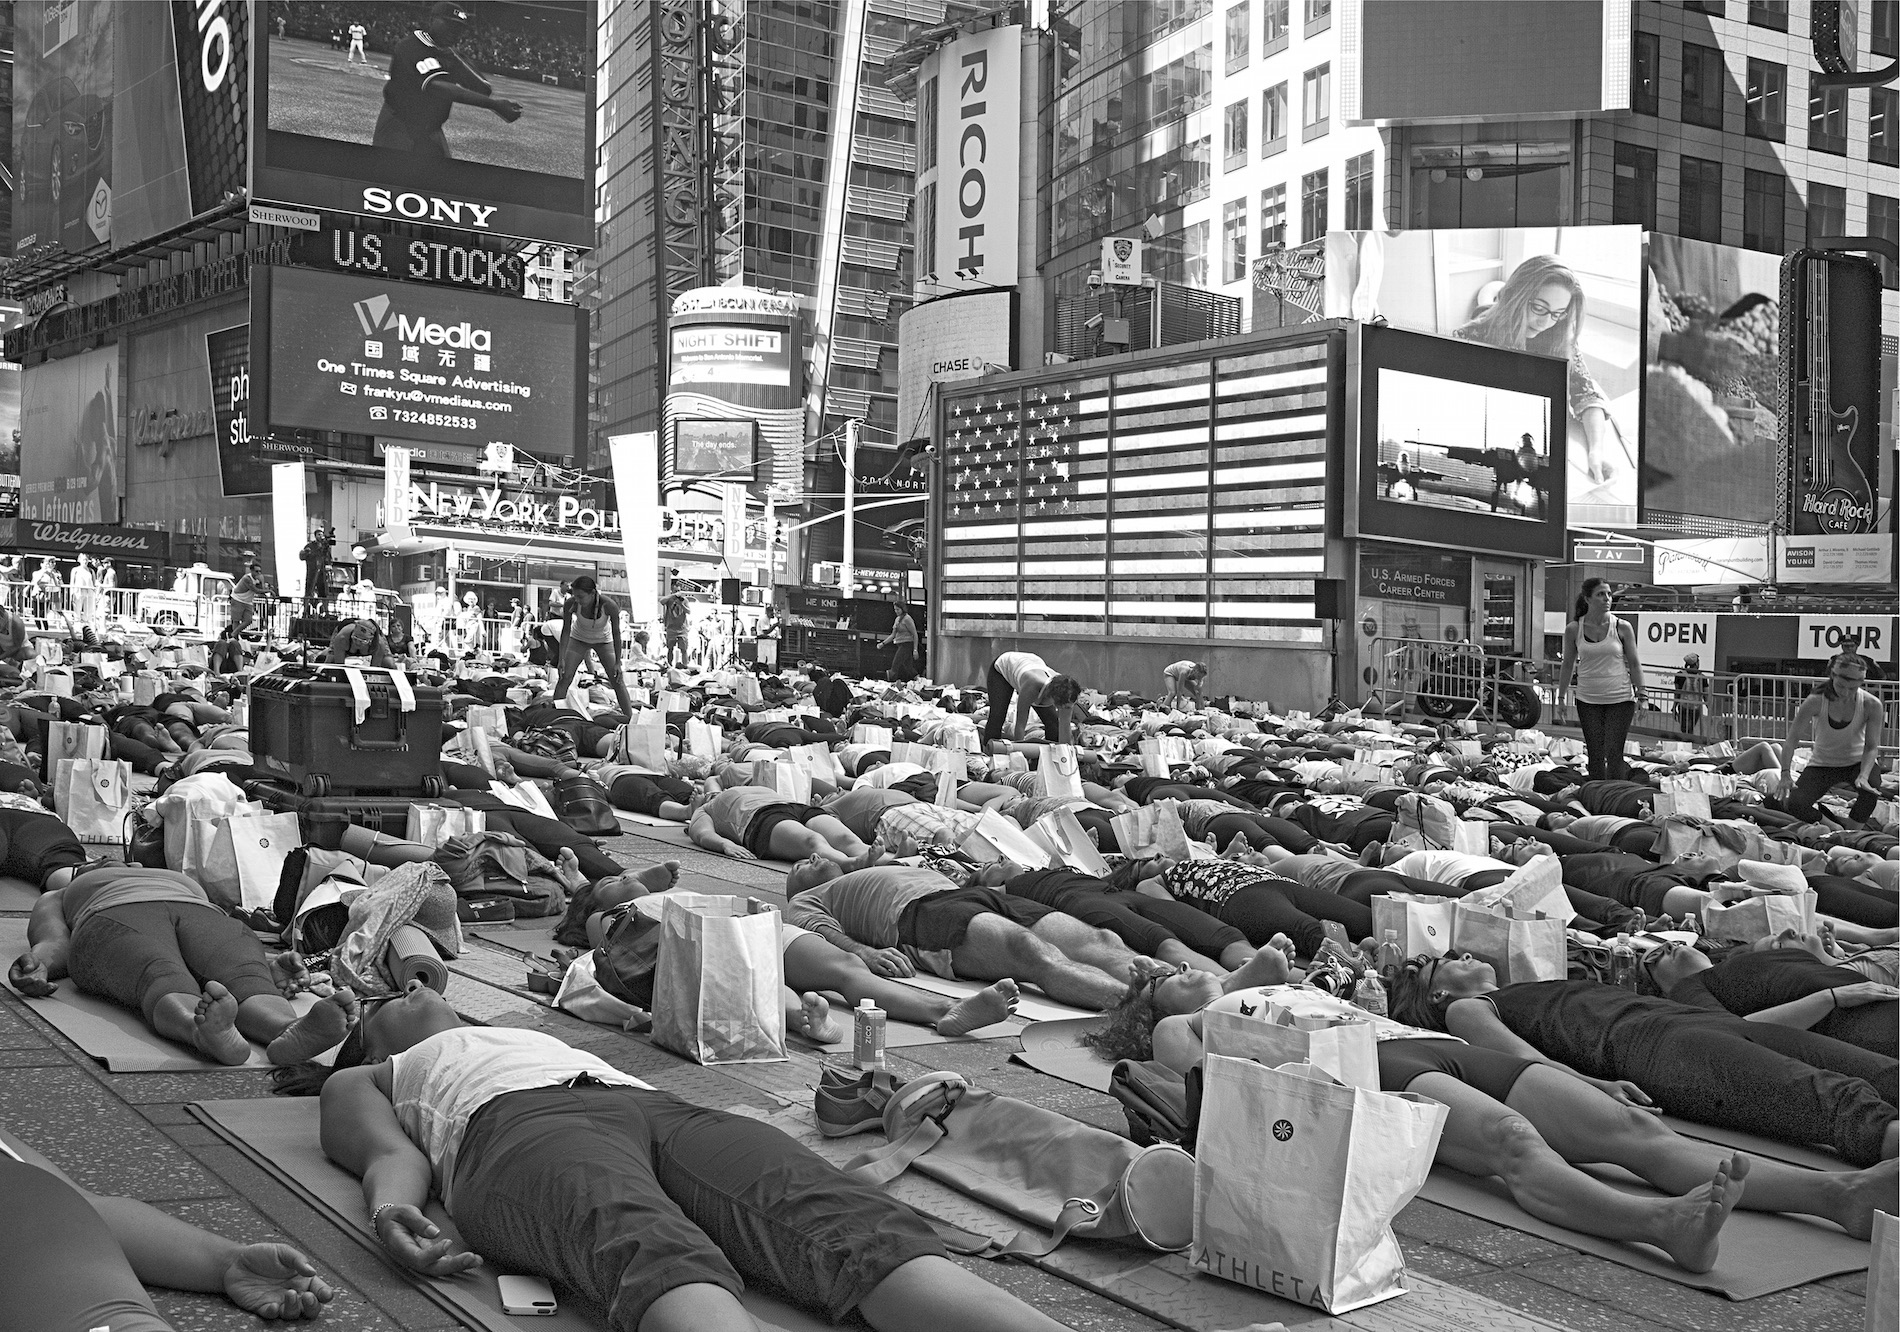 On the summer solstice every year, yoga classes are held all day.  ©  Betsy Karel - America's Stage: Times Square